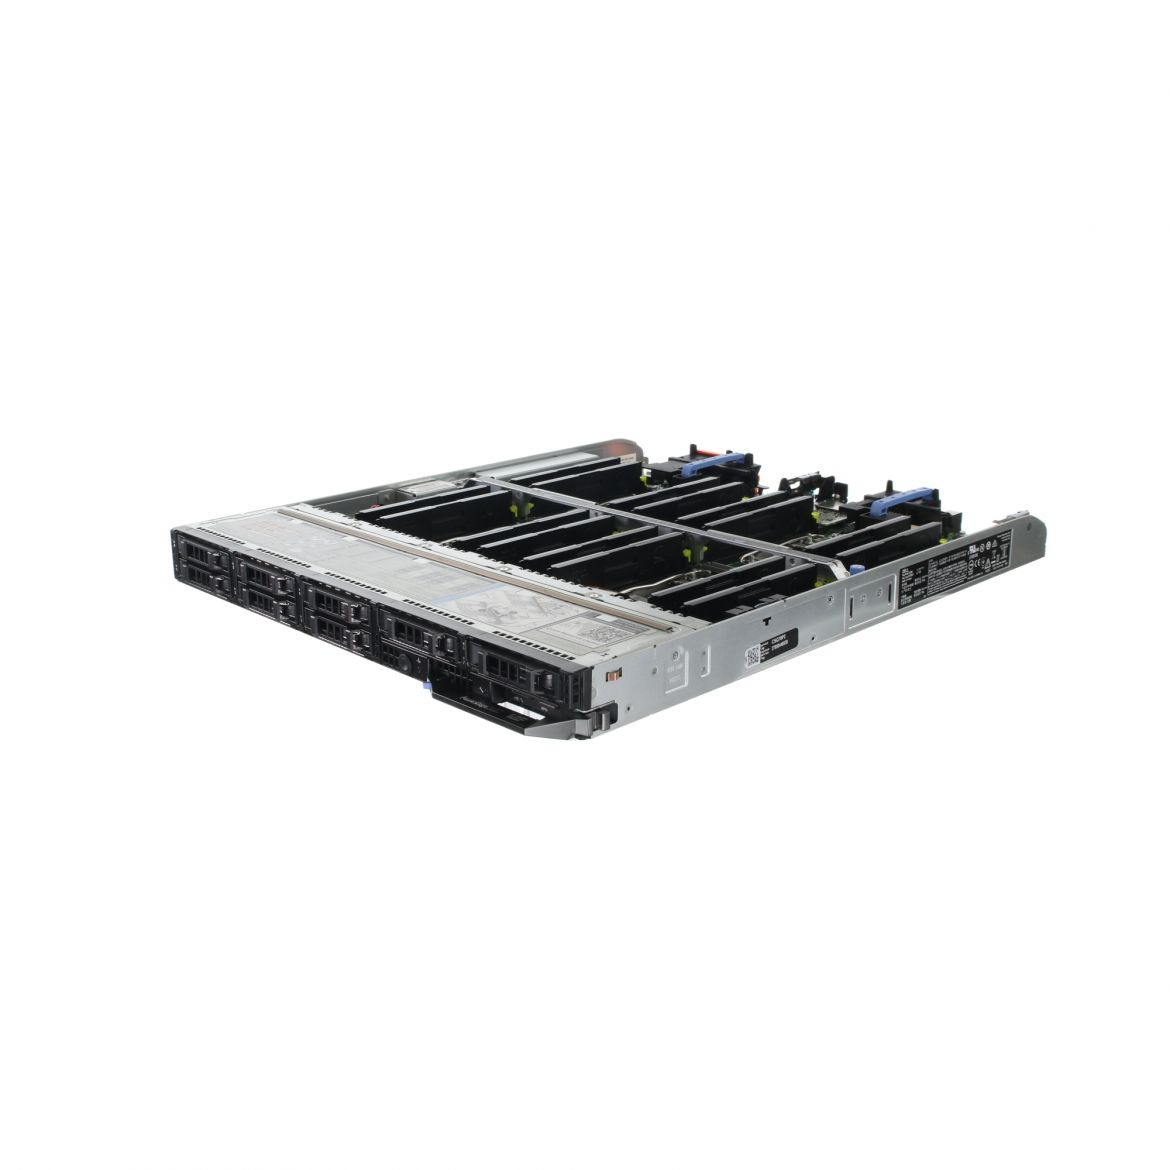 FC830 CHASSIS